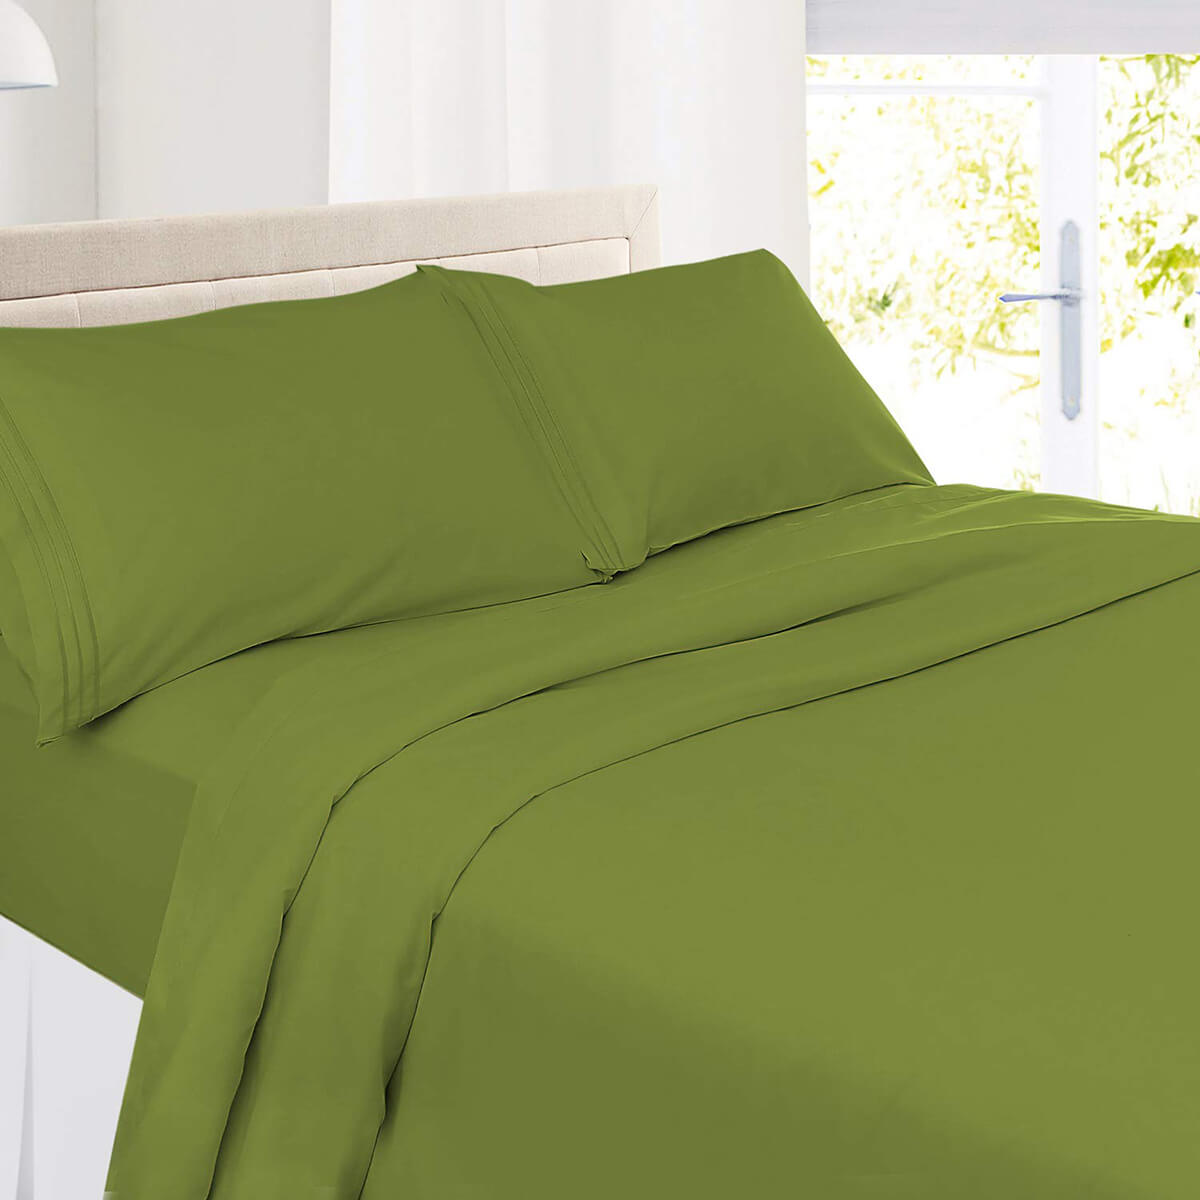 Nestl Bedding 5 Piece Sheet Set